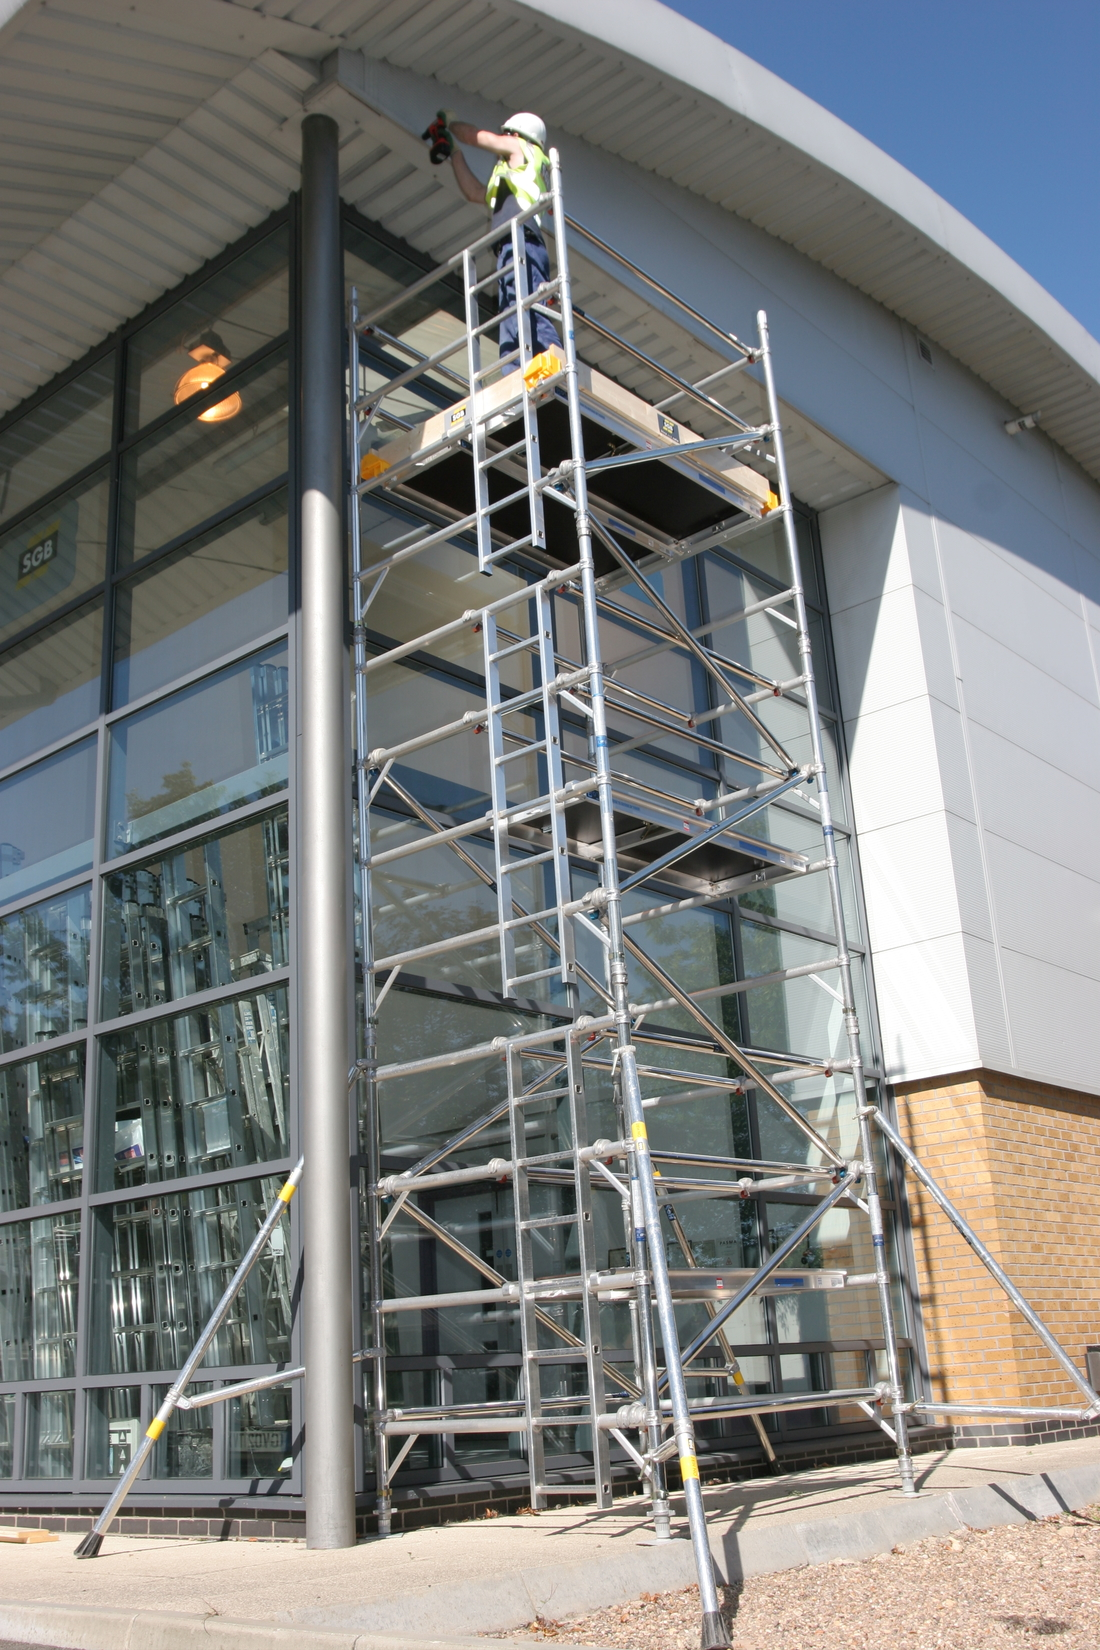 2.5m x 1.5m Base (Double Span) Scaffold Tower Maximum Platform Height 9.2m